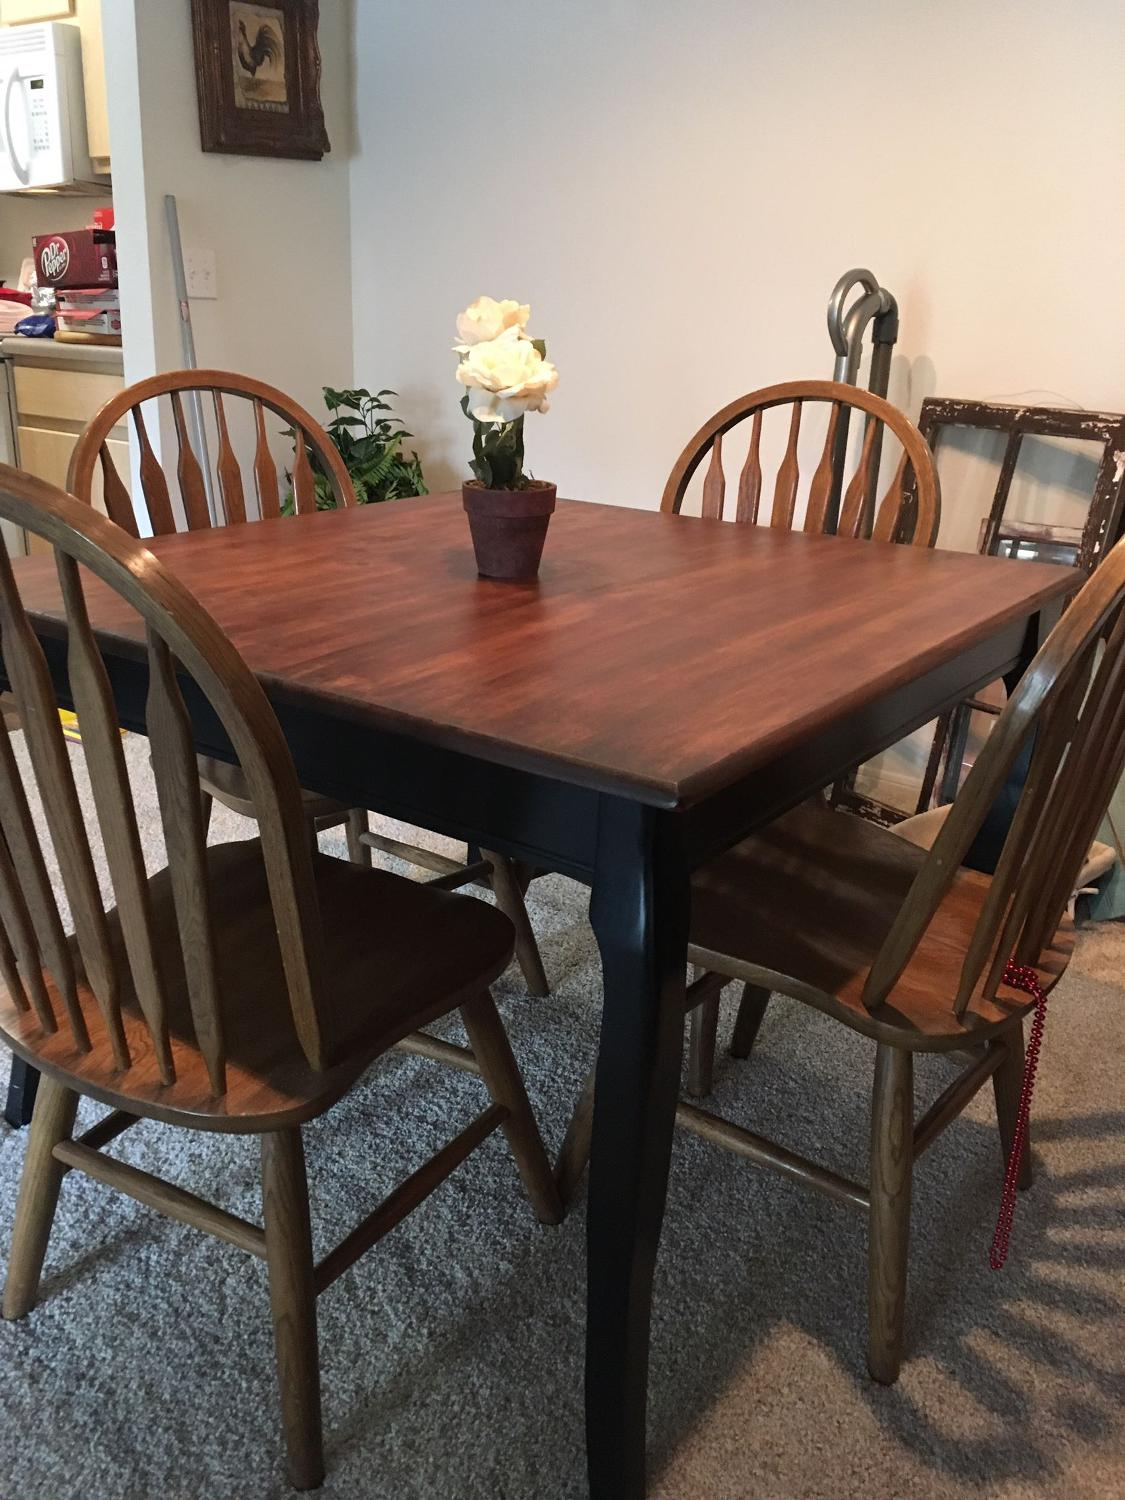 Amazing photo of  Wood Square Table With 4 Chairs for sale in Pensacola Florida for with #886844 color and 1125x1500 pixels